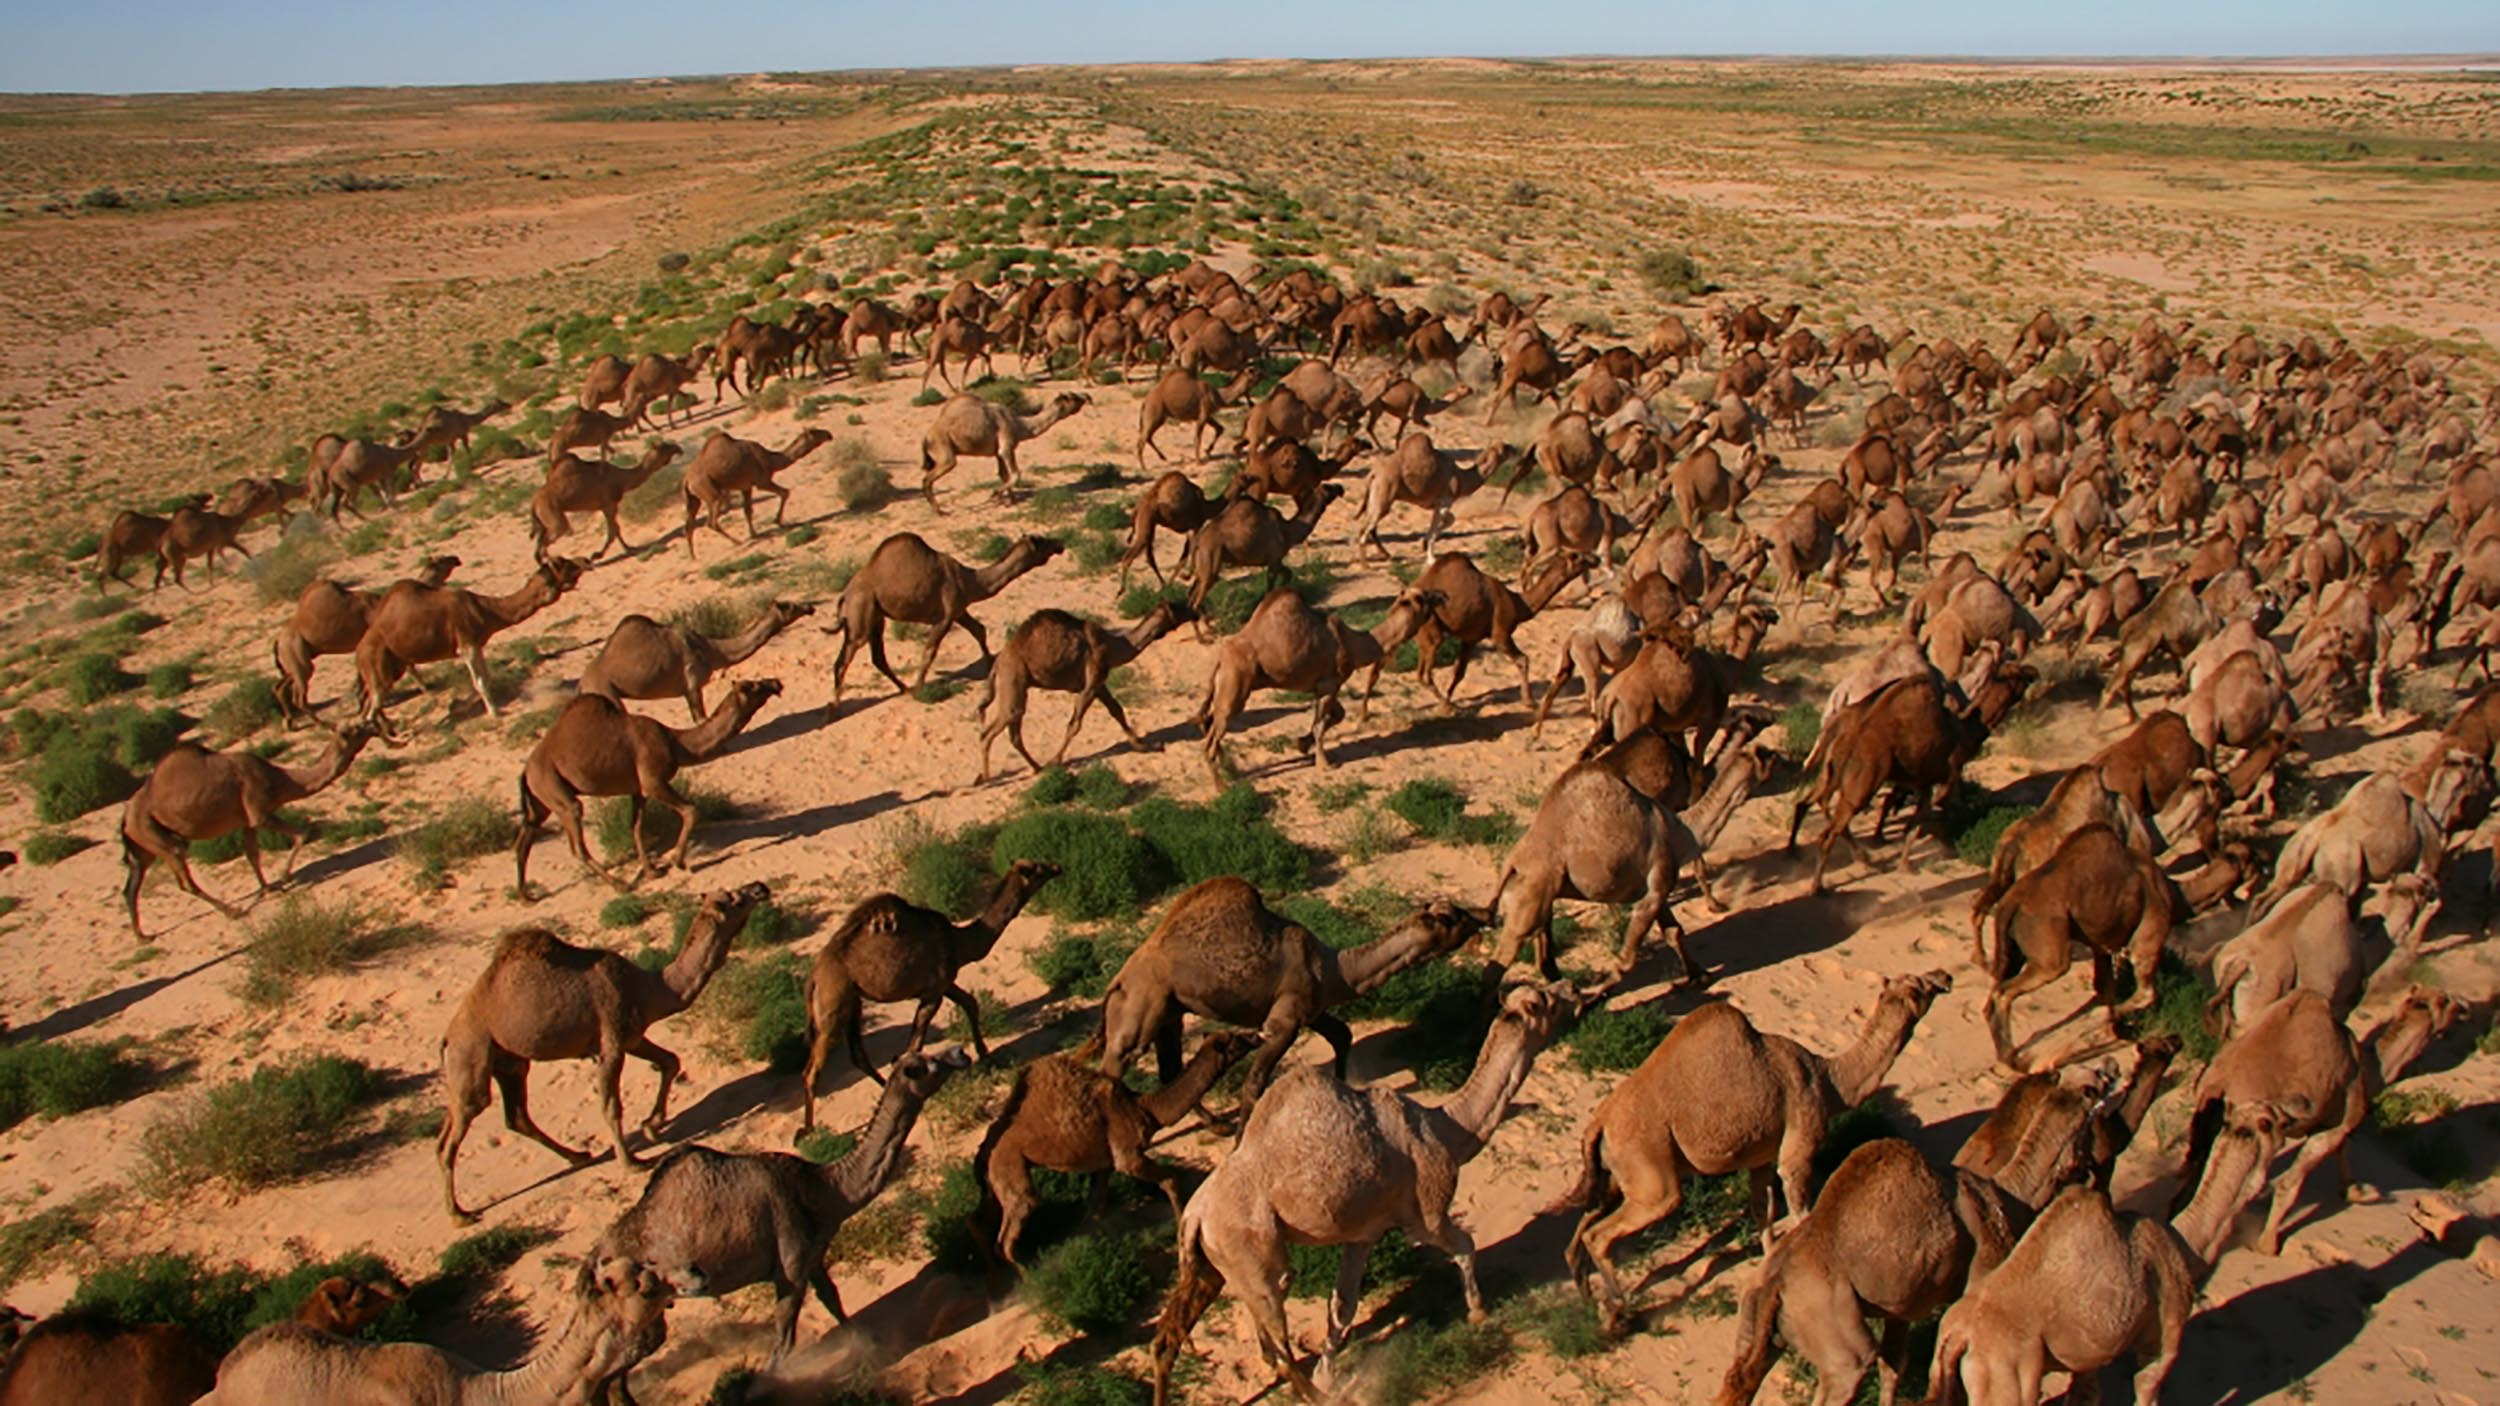 There are an estimated 300,000 feral camels in Australia, causing severe degradation of water sources and some vegetation types and damage to fences and other infrastructure. A recent collaborative program has substantially reduced their numbers across extensive areas.